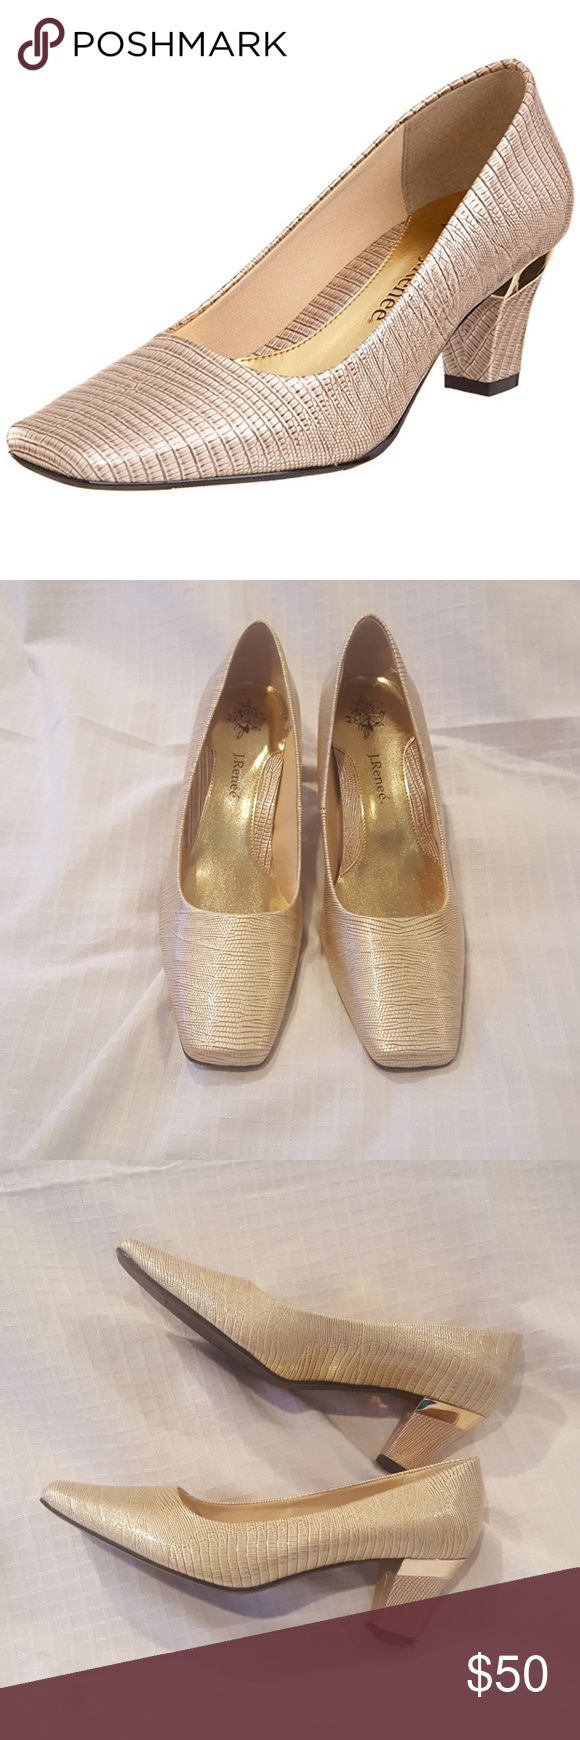 J. Renee - Mary Luminous lizard print taupe shoe with a stacked heel with gold accents.  Square toe with 2.5 inch heel. Brand new never worn. J. Renee Shoes Heels